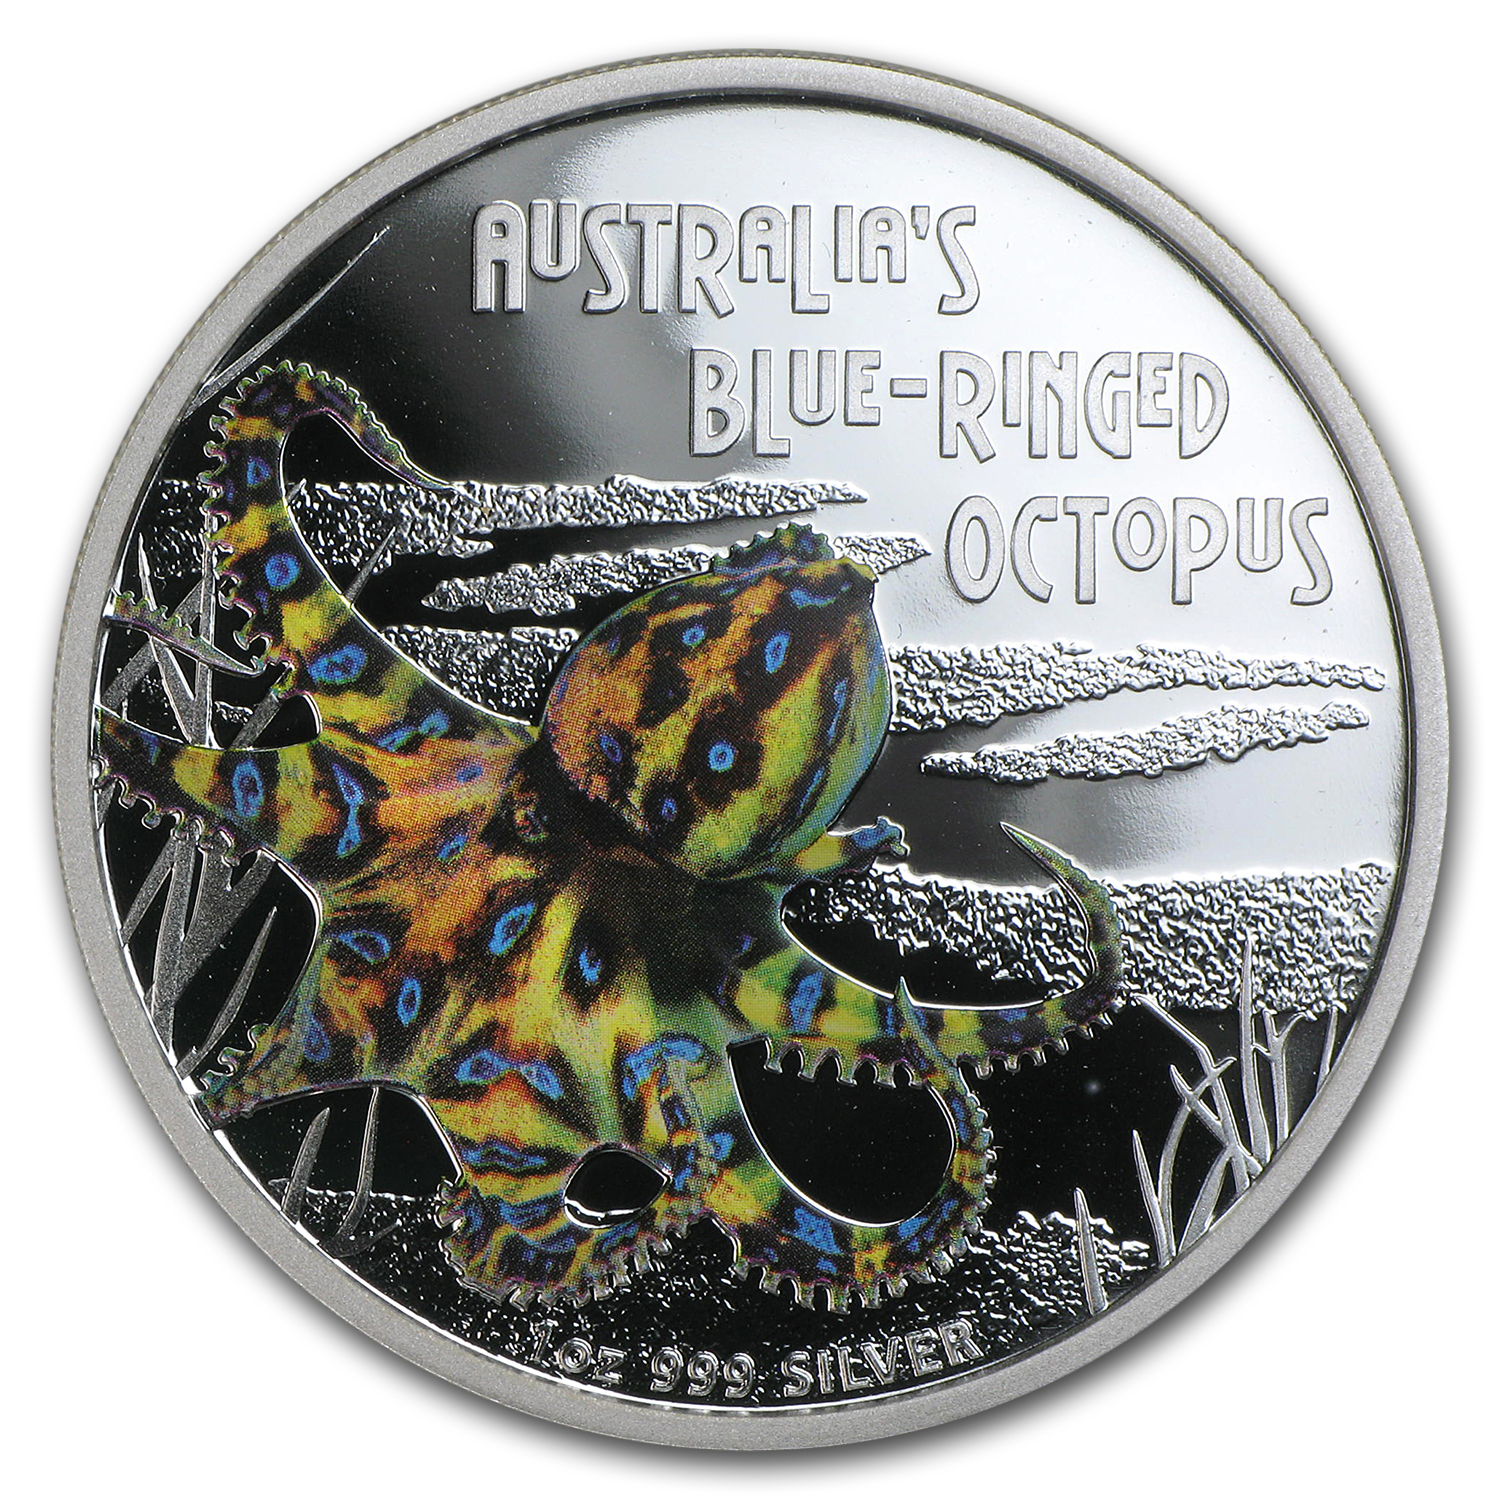 2008 1 oz Proof Silver Blue Ringed Octopus- Deadly and Dangerous